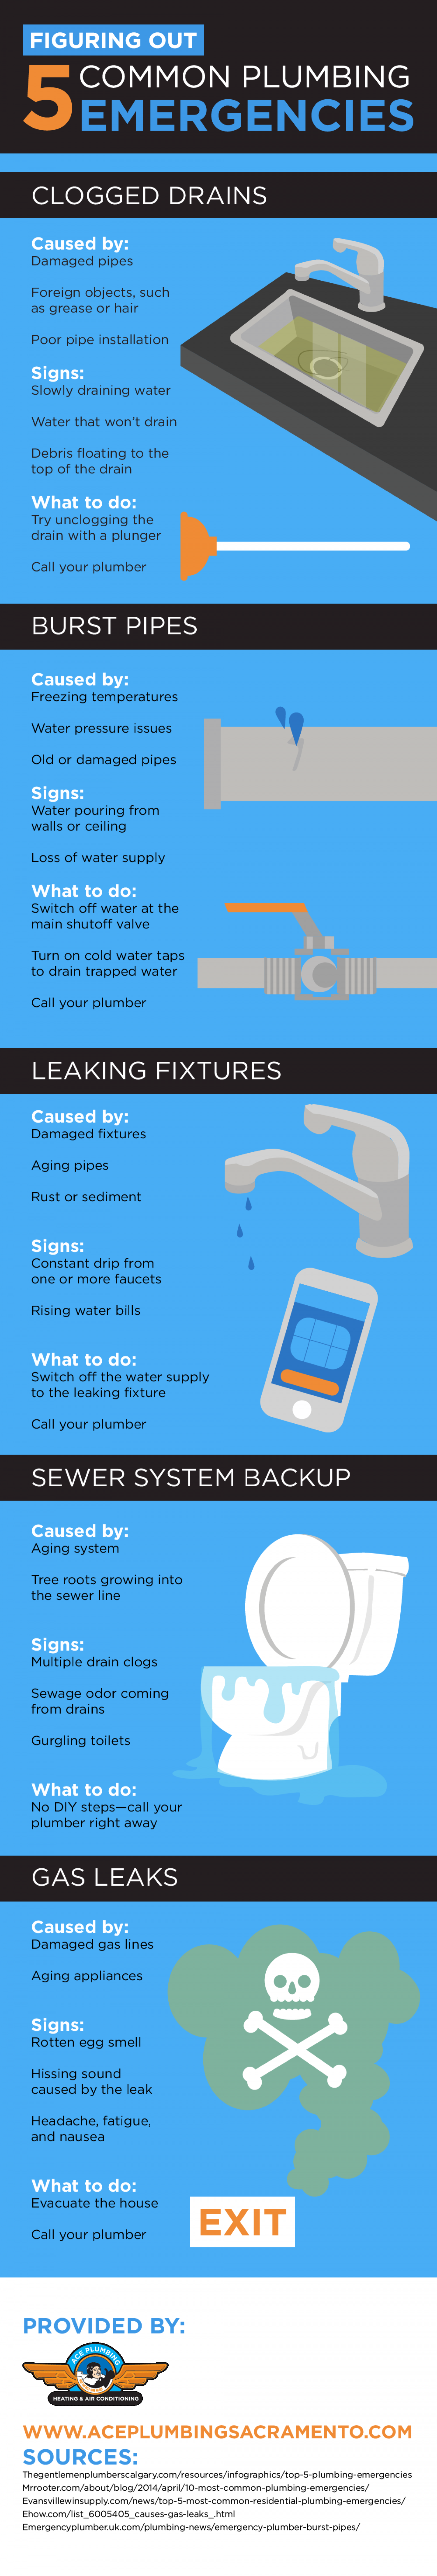 Figuring Out 5 Common Plumbing Emergencies Infographic